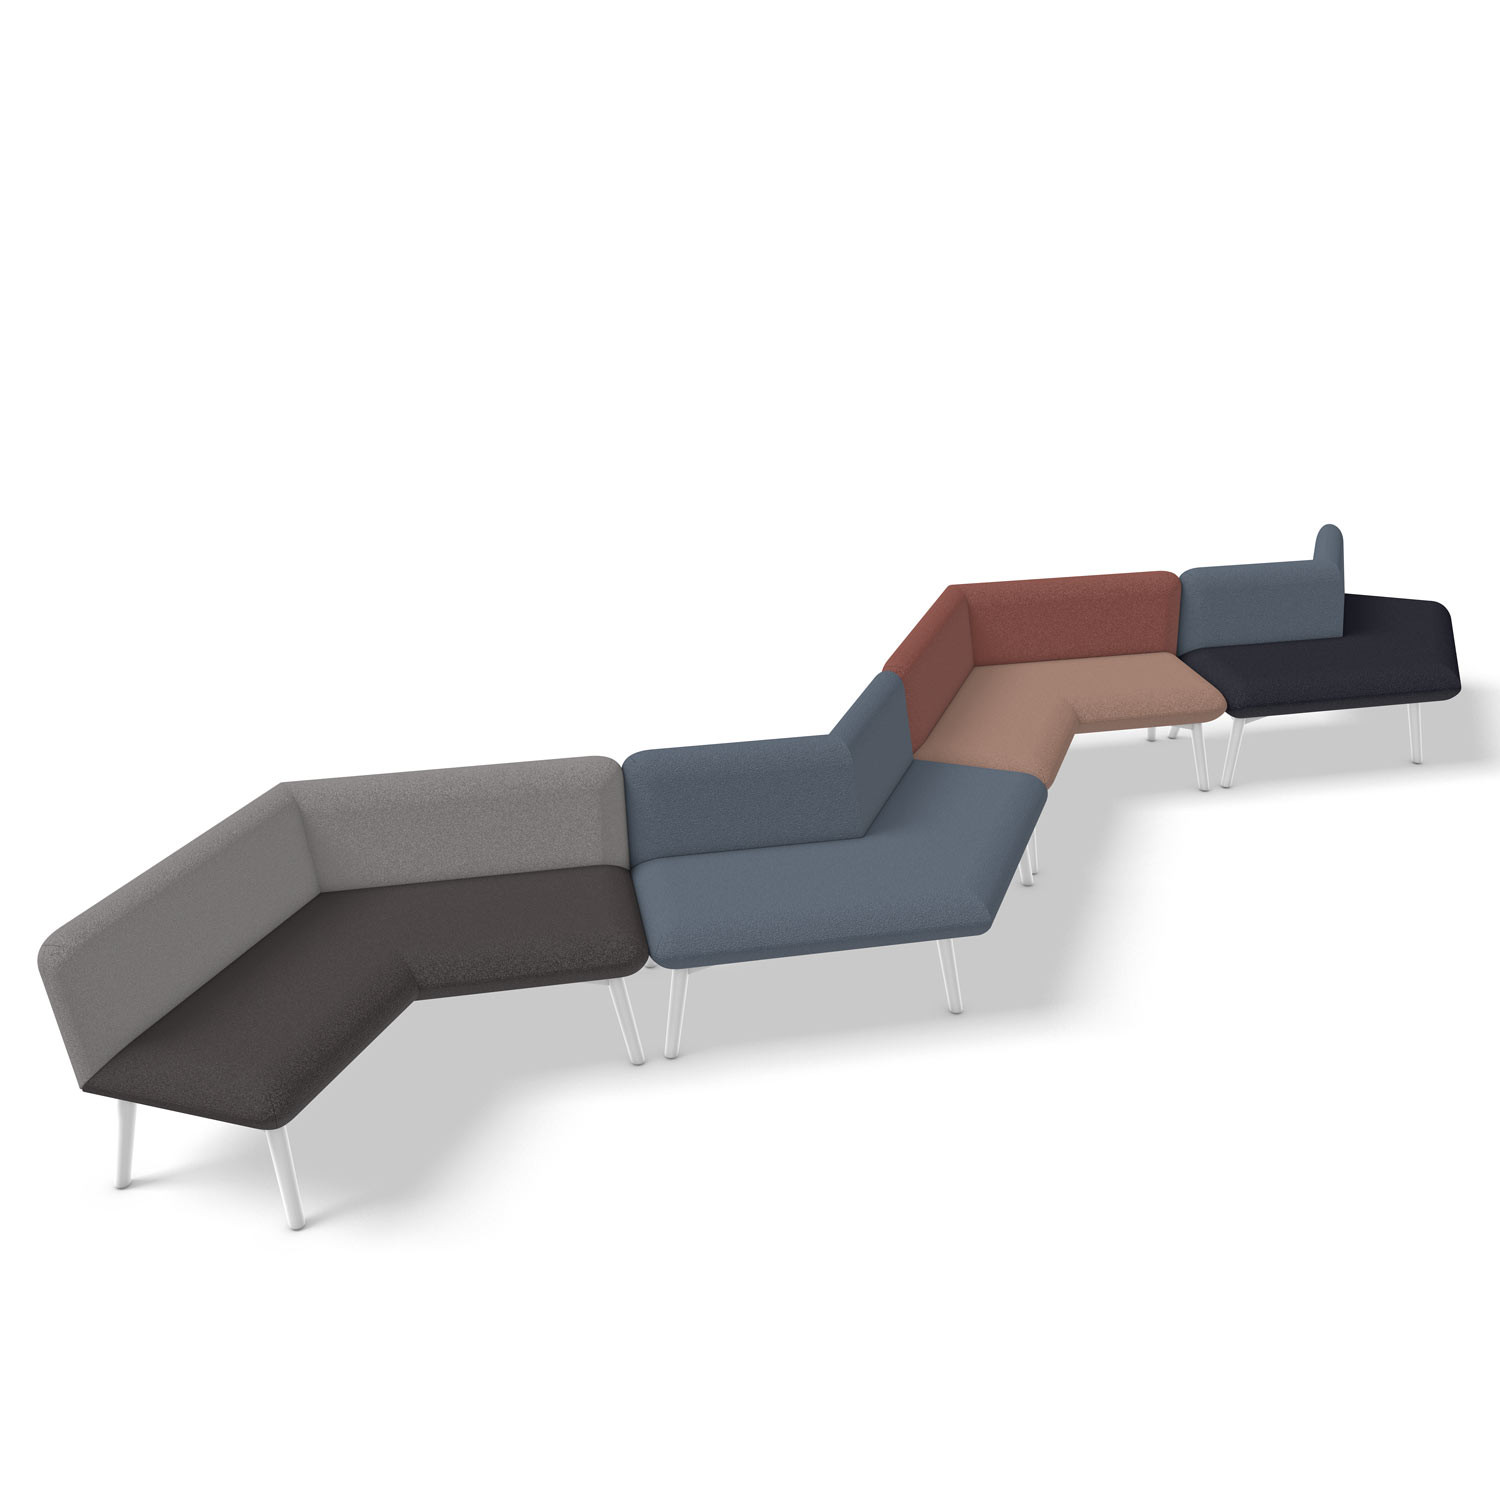 Myriad ZigZag Seating